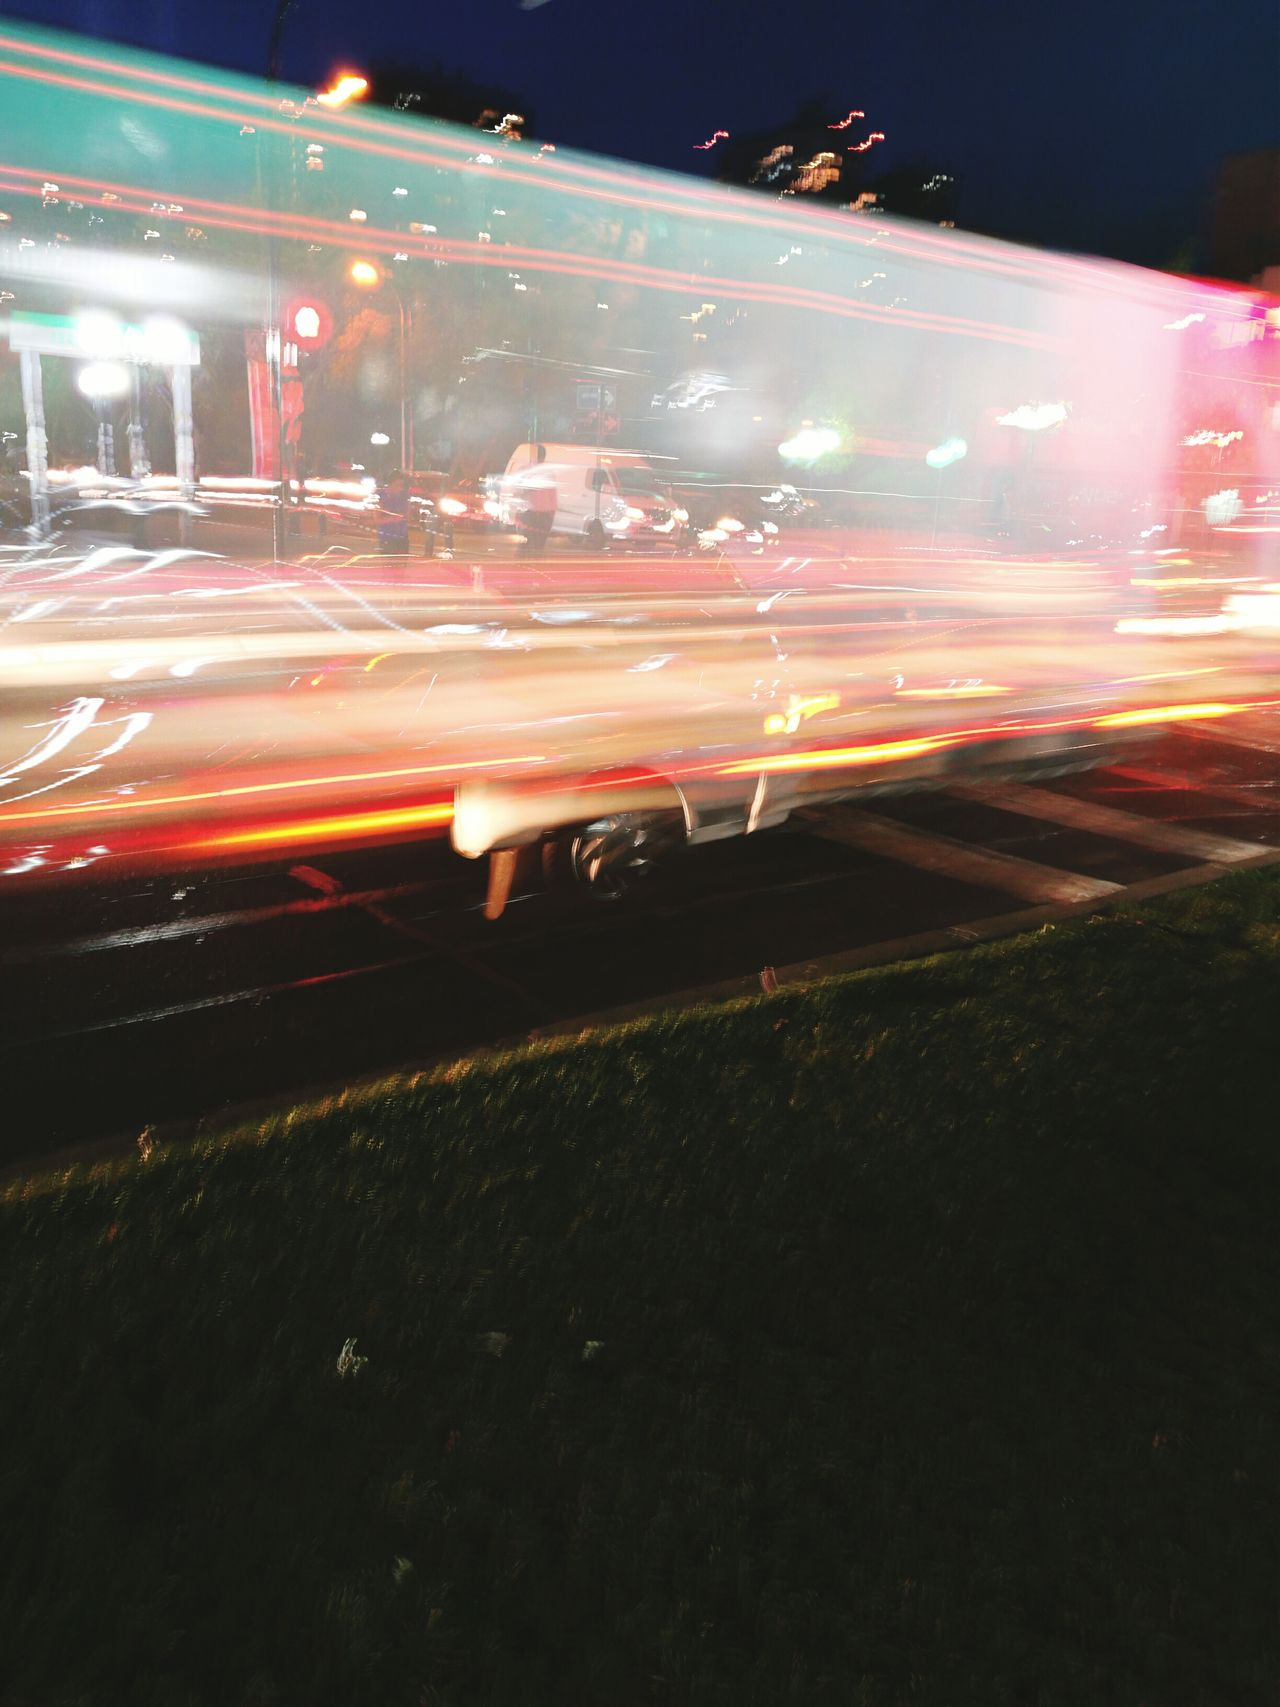 Night Illuminated Lighting Equipment Speed Light Trail Car City Motion Outdoors No People Grass Sky Sports Race Architecture Motorsport Street City Life City Road Mobile Photography Huaweiphotography Huawei P9. Sports Photography Travel Nightphotography